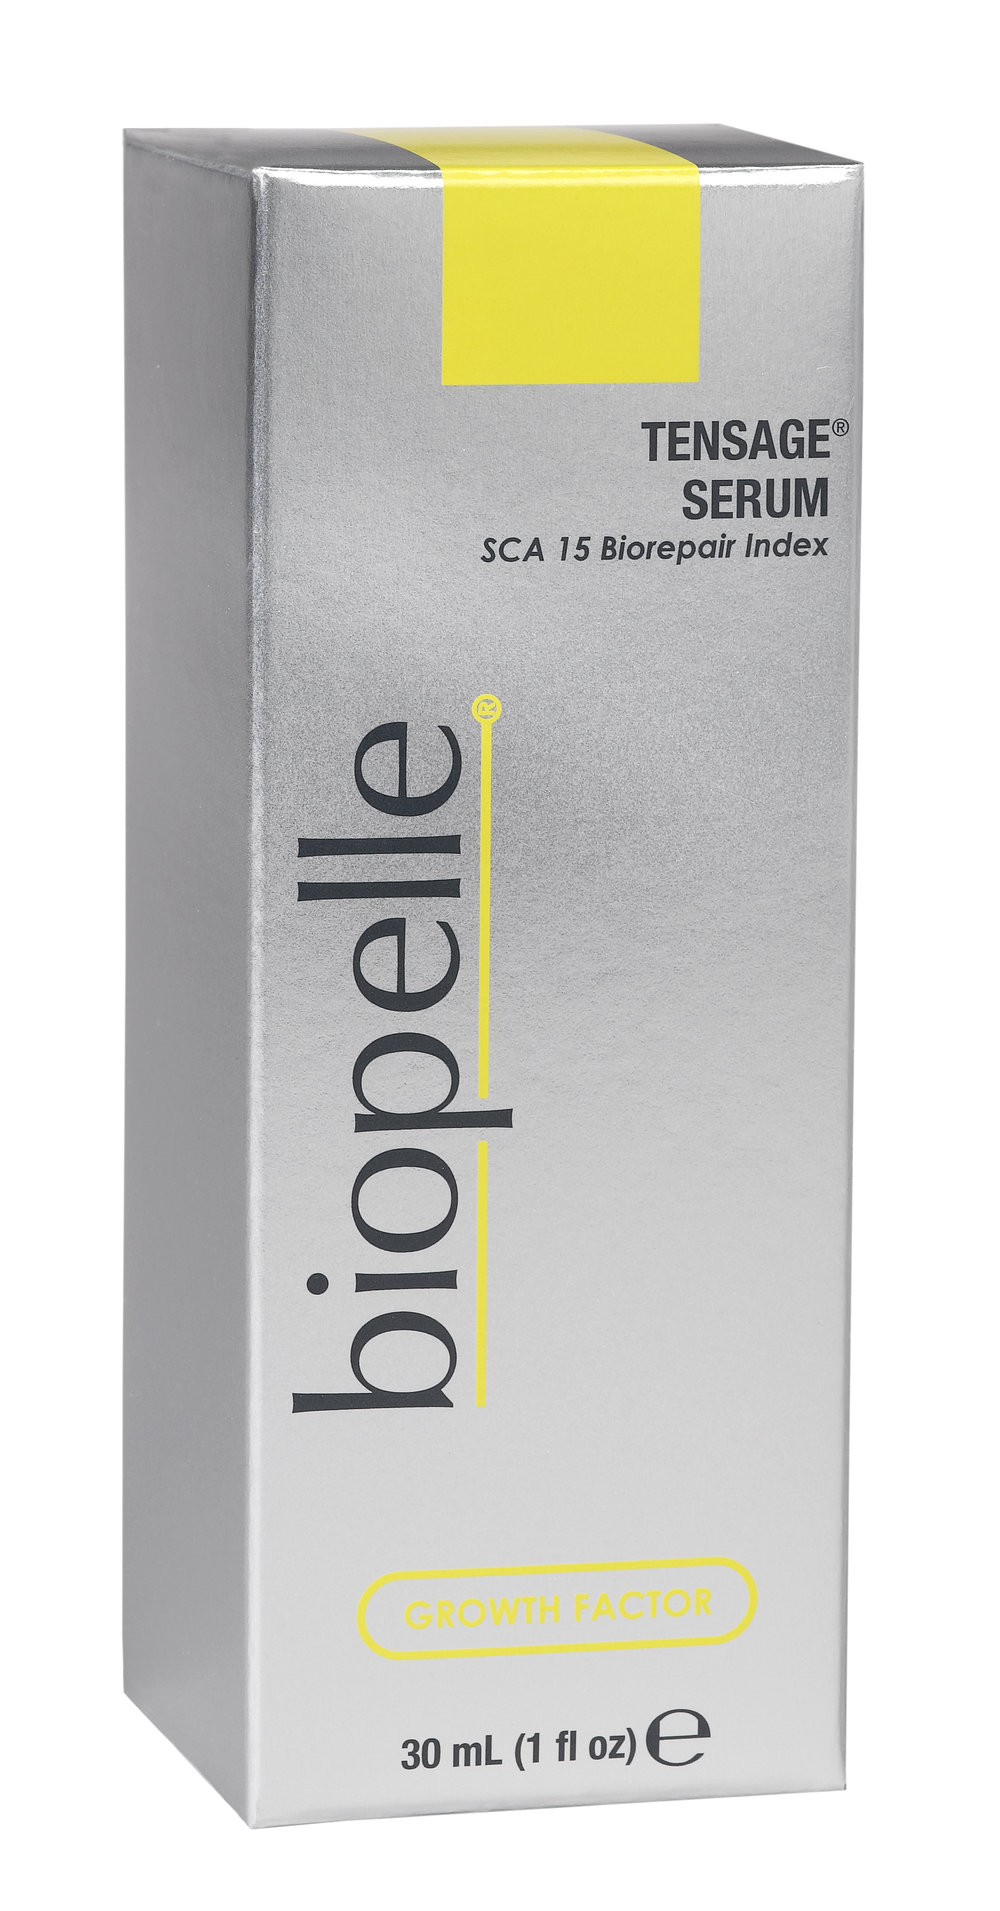 Biopelle  Tensage Serum   Growth factors help repair skin damage and restore elasticity, tone, and texture!